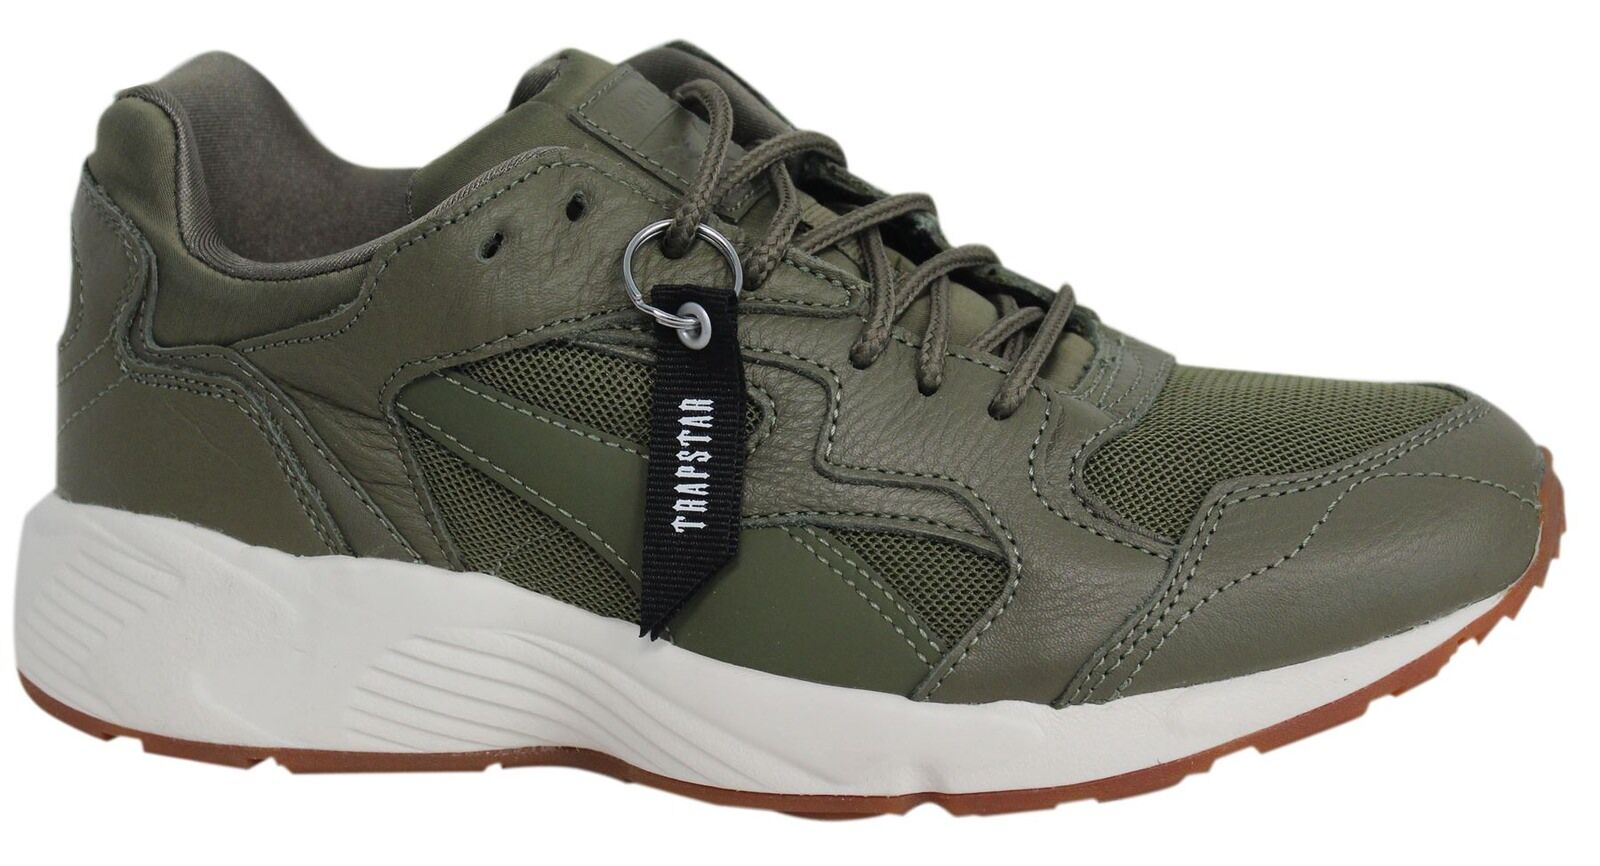 Puma x TRAPSTAR Prevail Lace Up Burnt Olive Mens Trainers 363469 02 U1